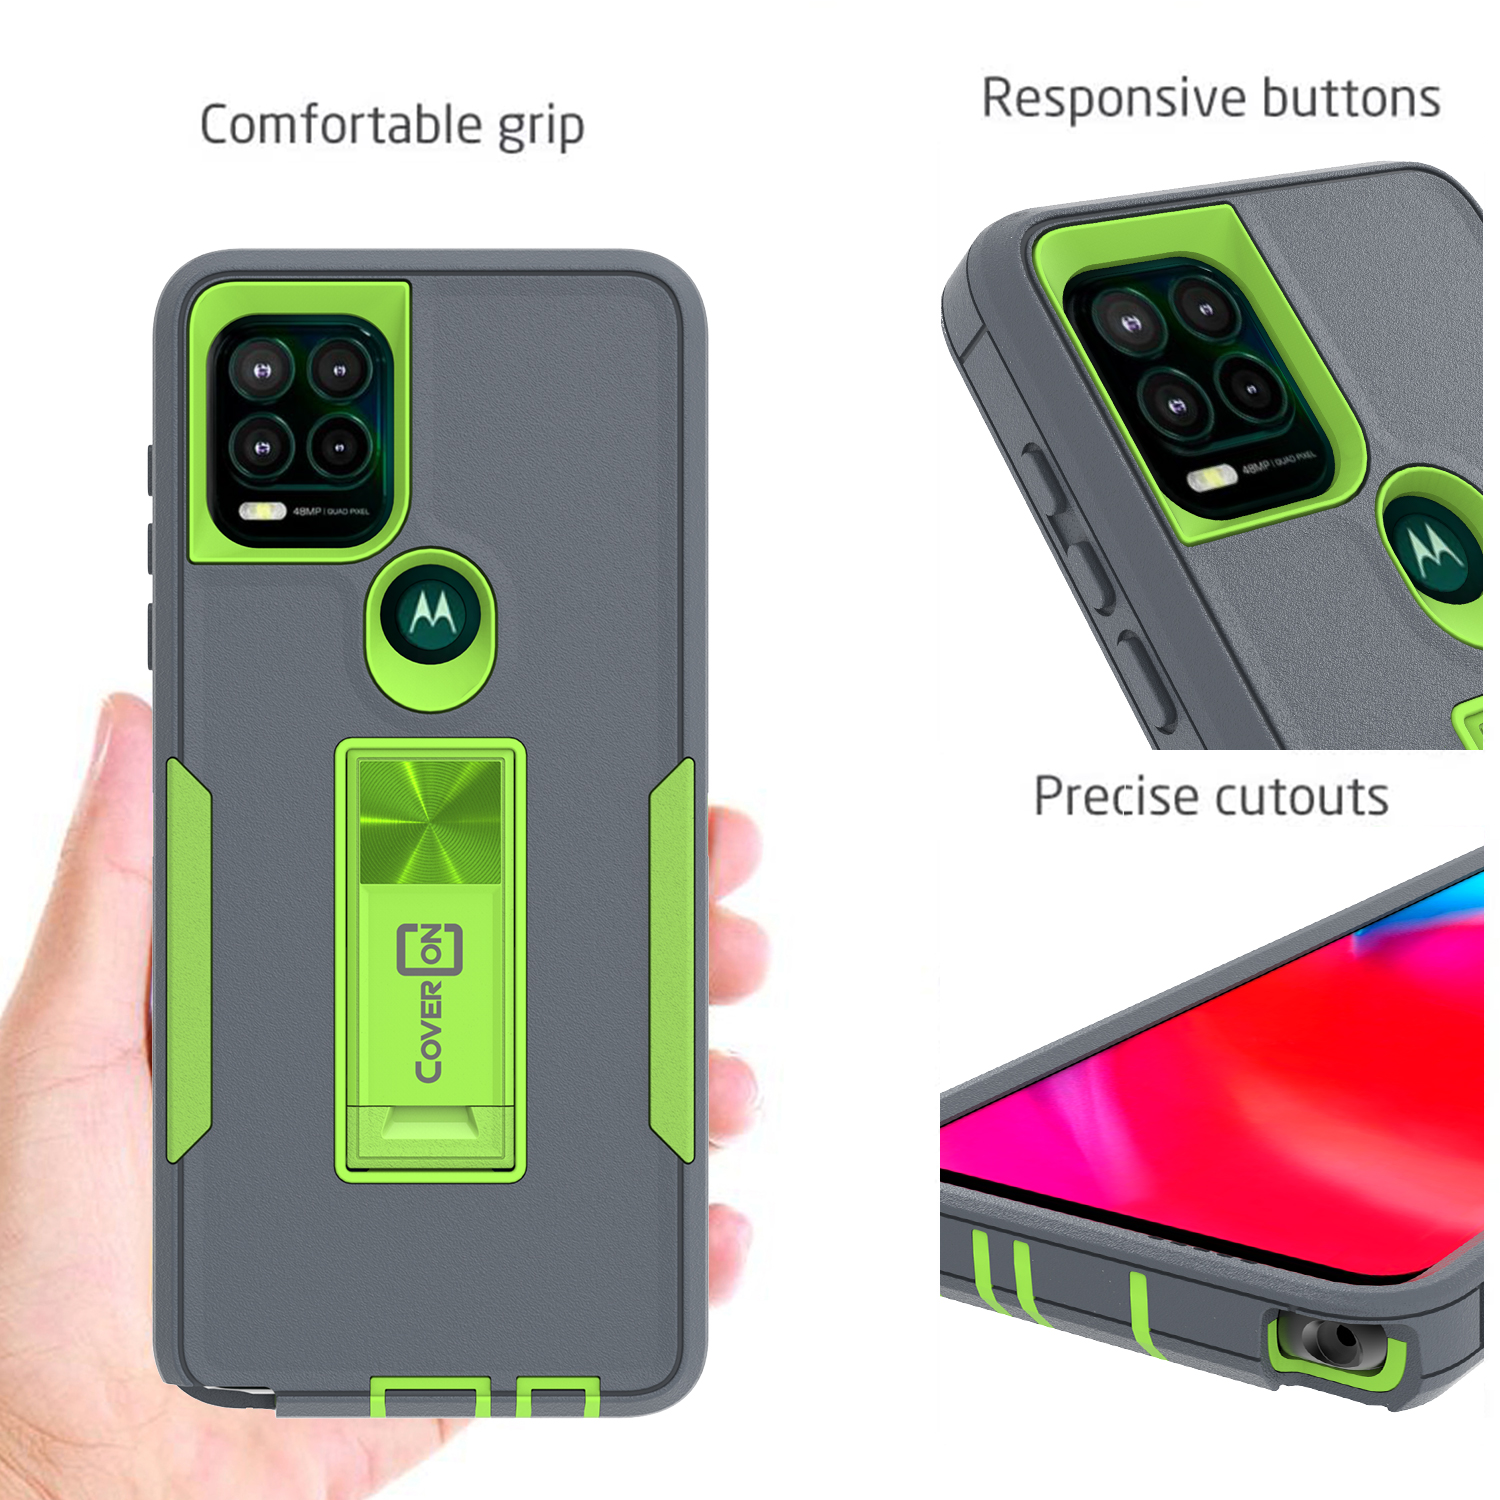 Rubberized Slim Grip Protective Back Phone Cover Case for LG G Flex 2